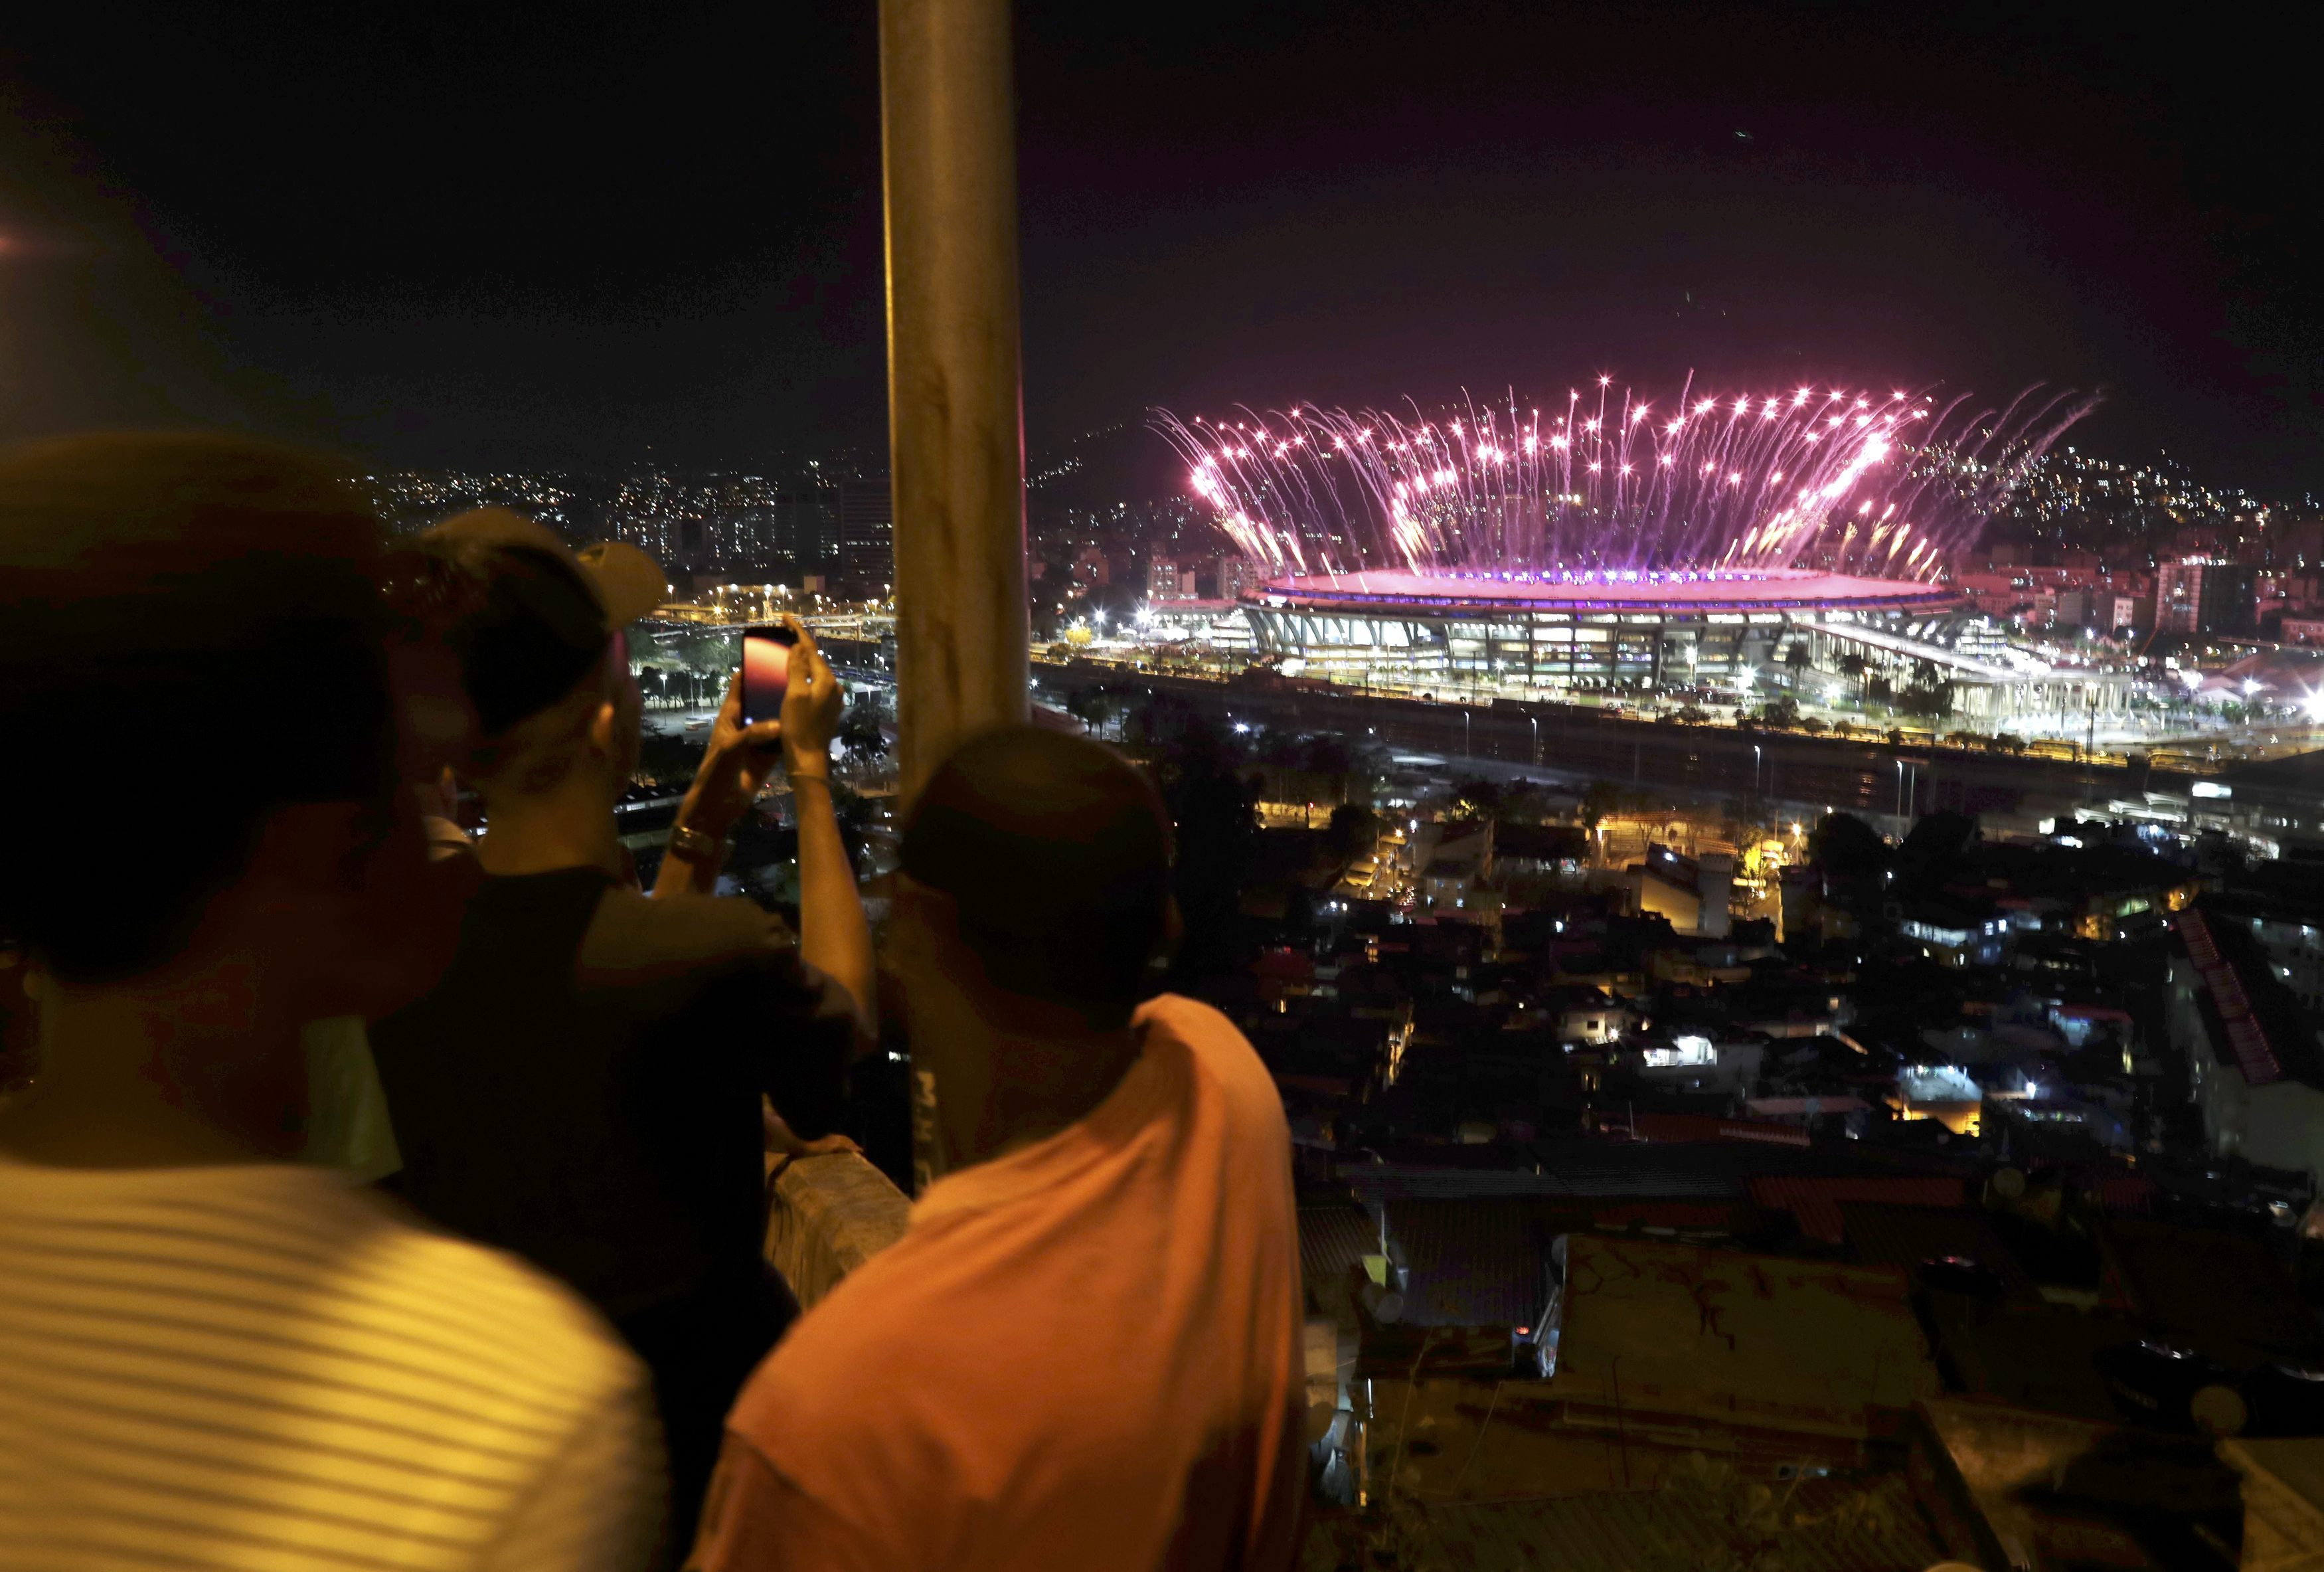 People watch fireworks explode over the Maracana Stadium from the roof of their home in the Mangueira favela, or slum, as the Olympic Opening Ceremony unfolds. |  REUTERS